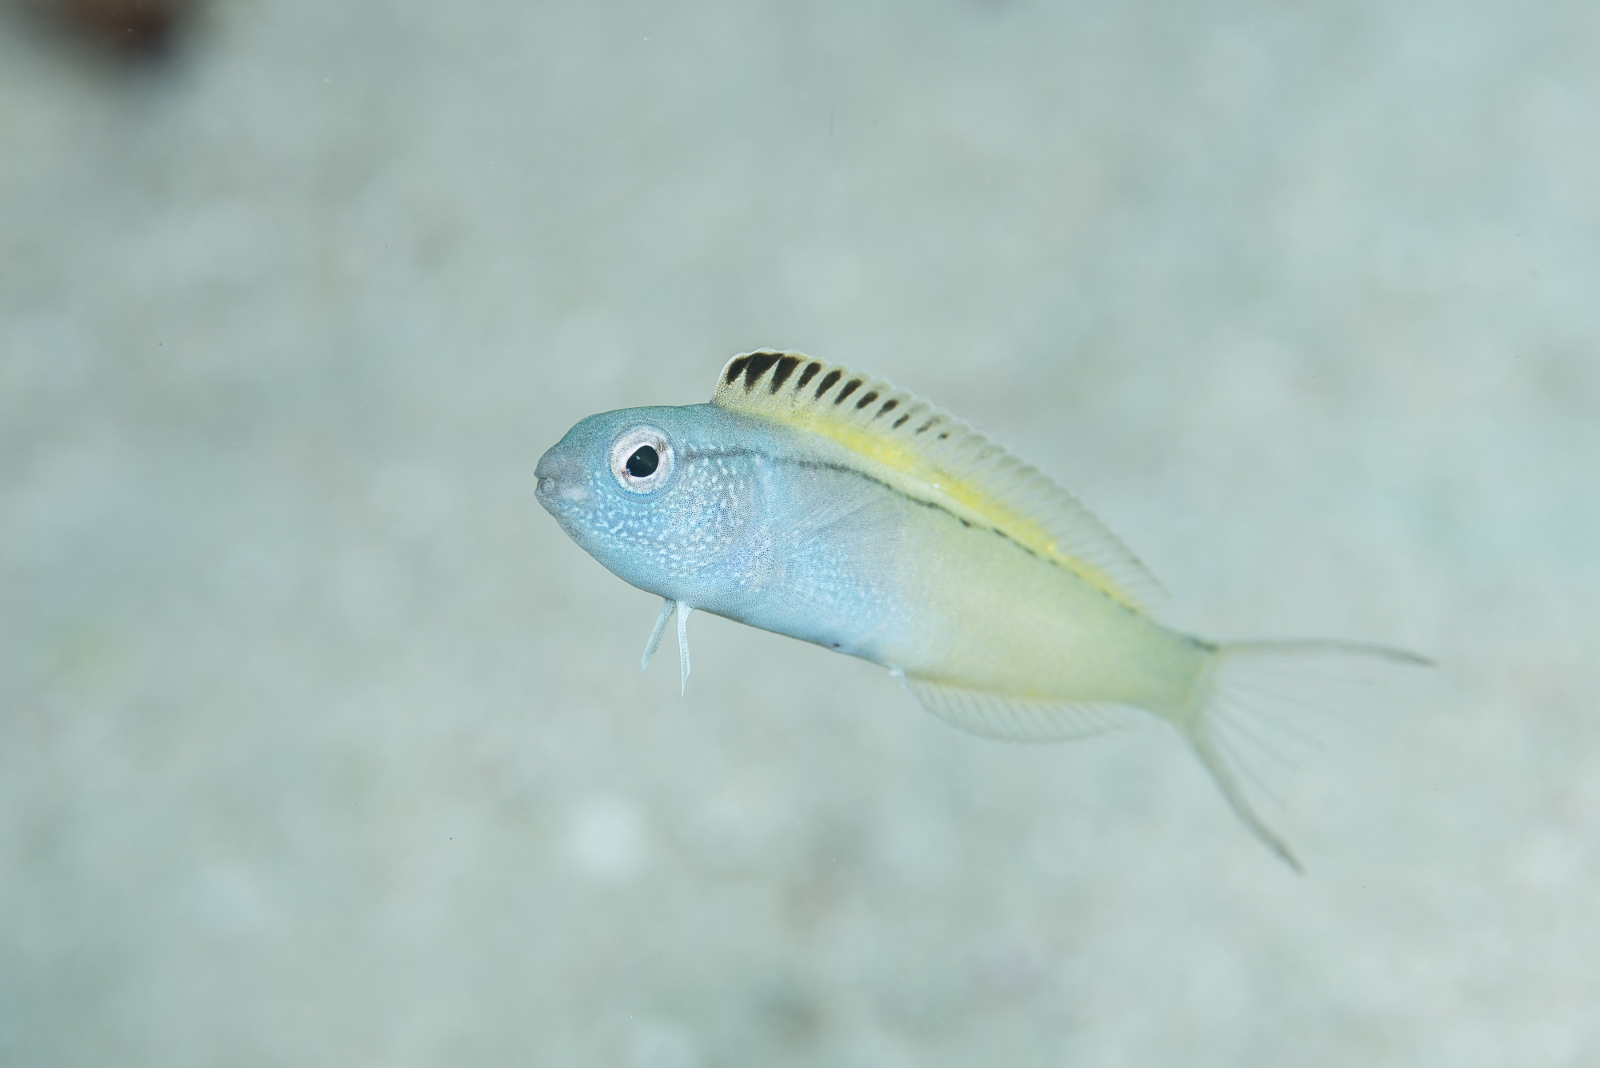 This fish basically gives its enemies heroin